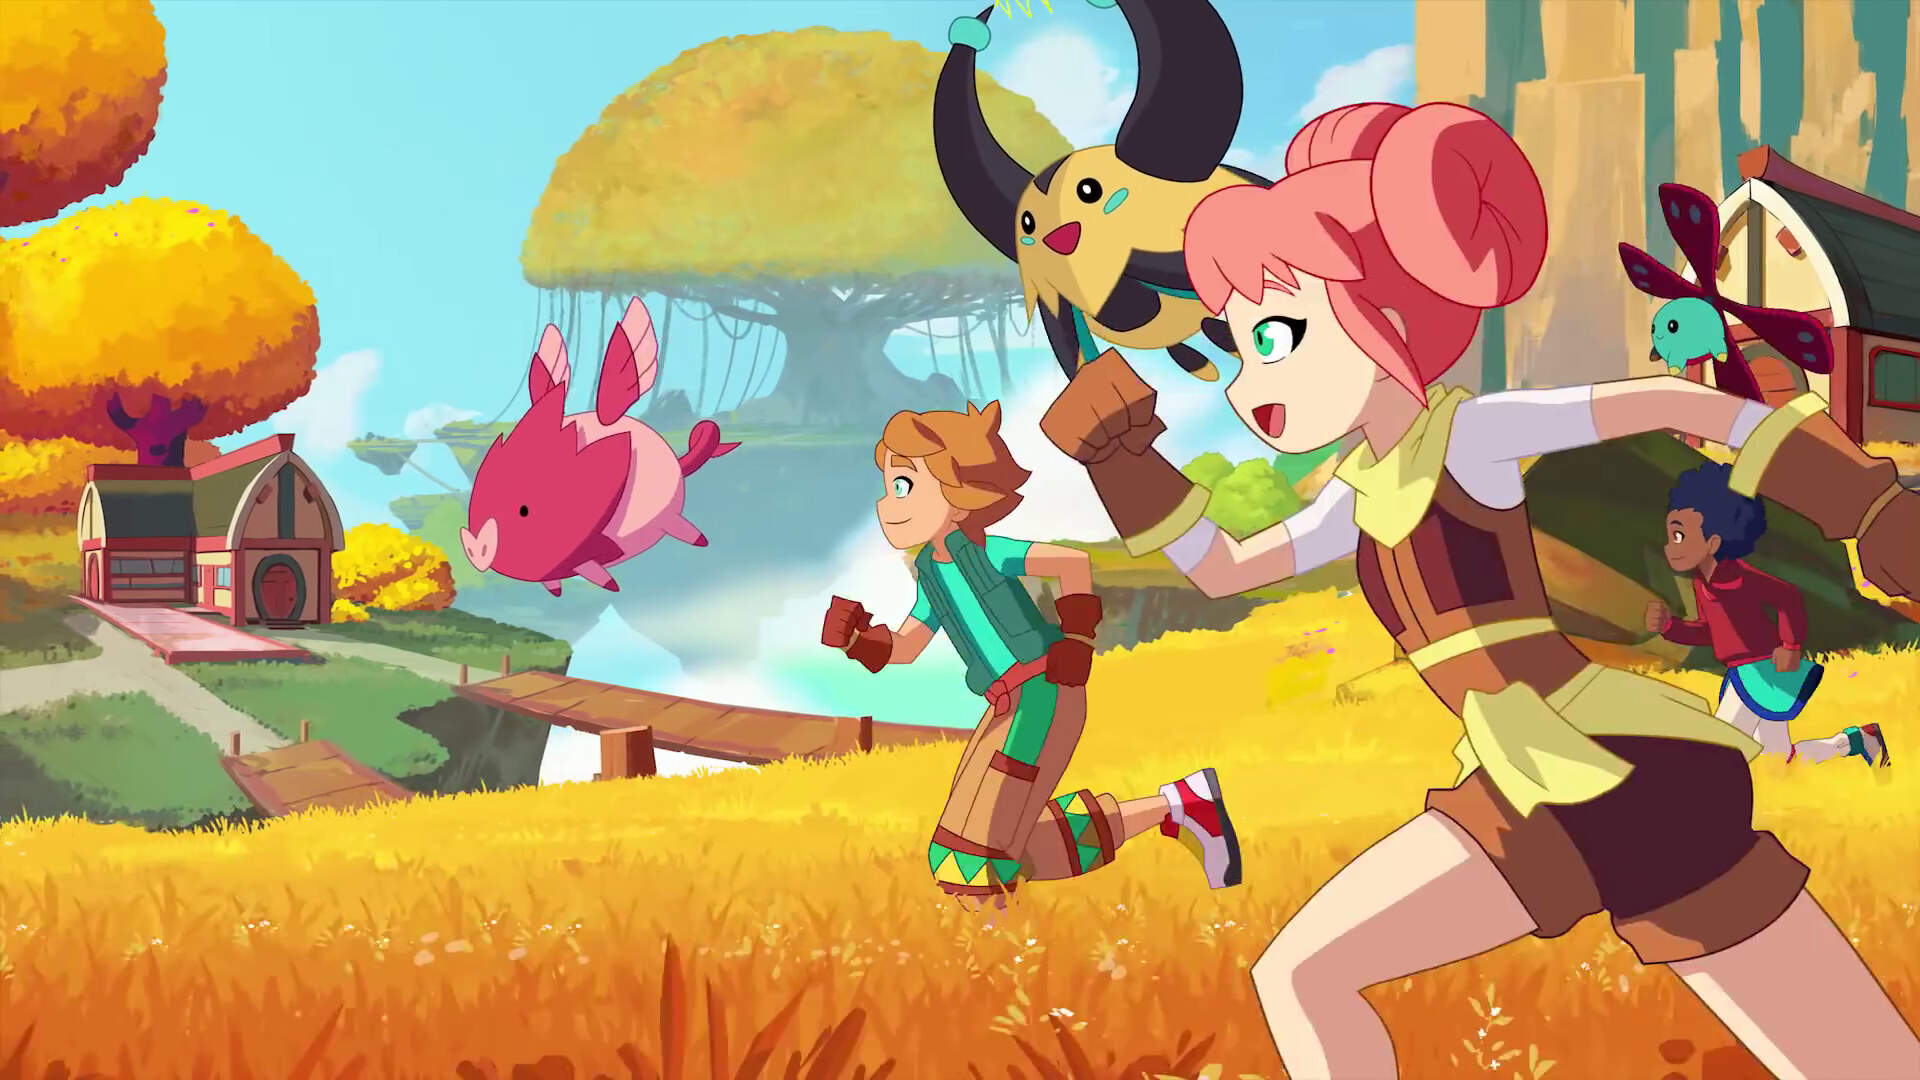 Temtem: When Are New Islands Being Released?